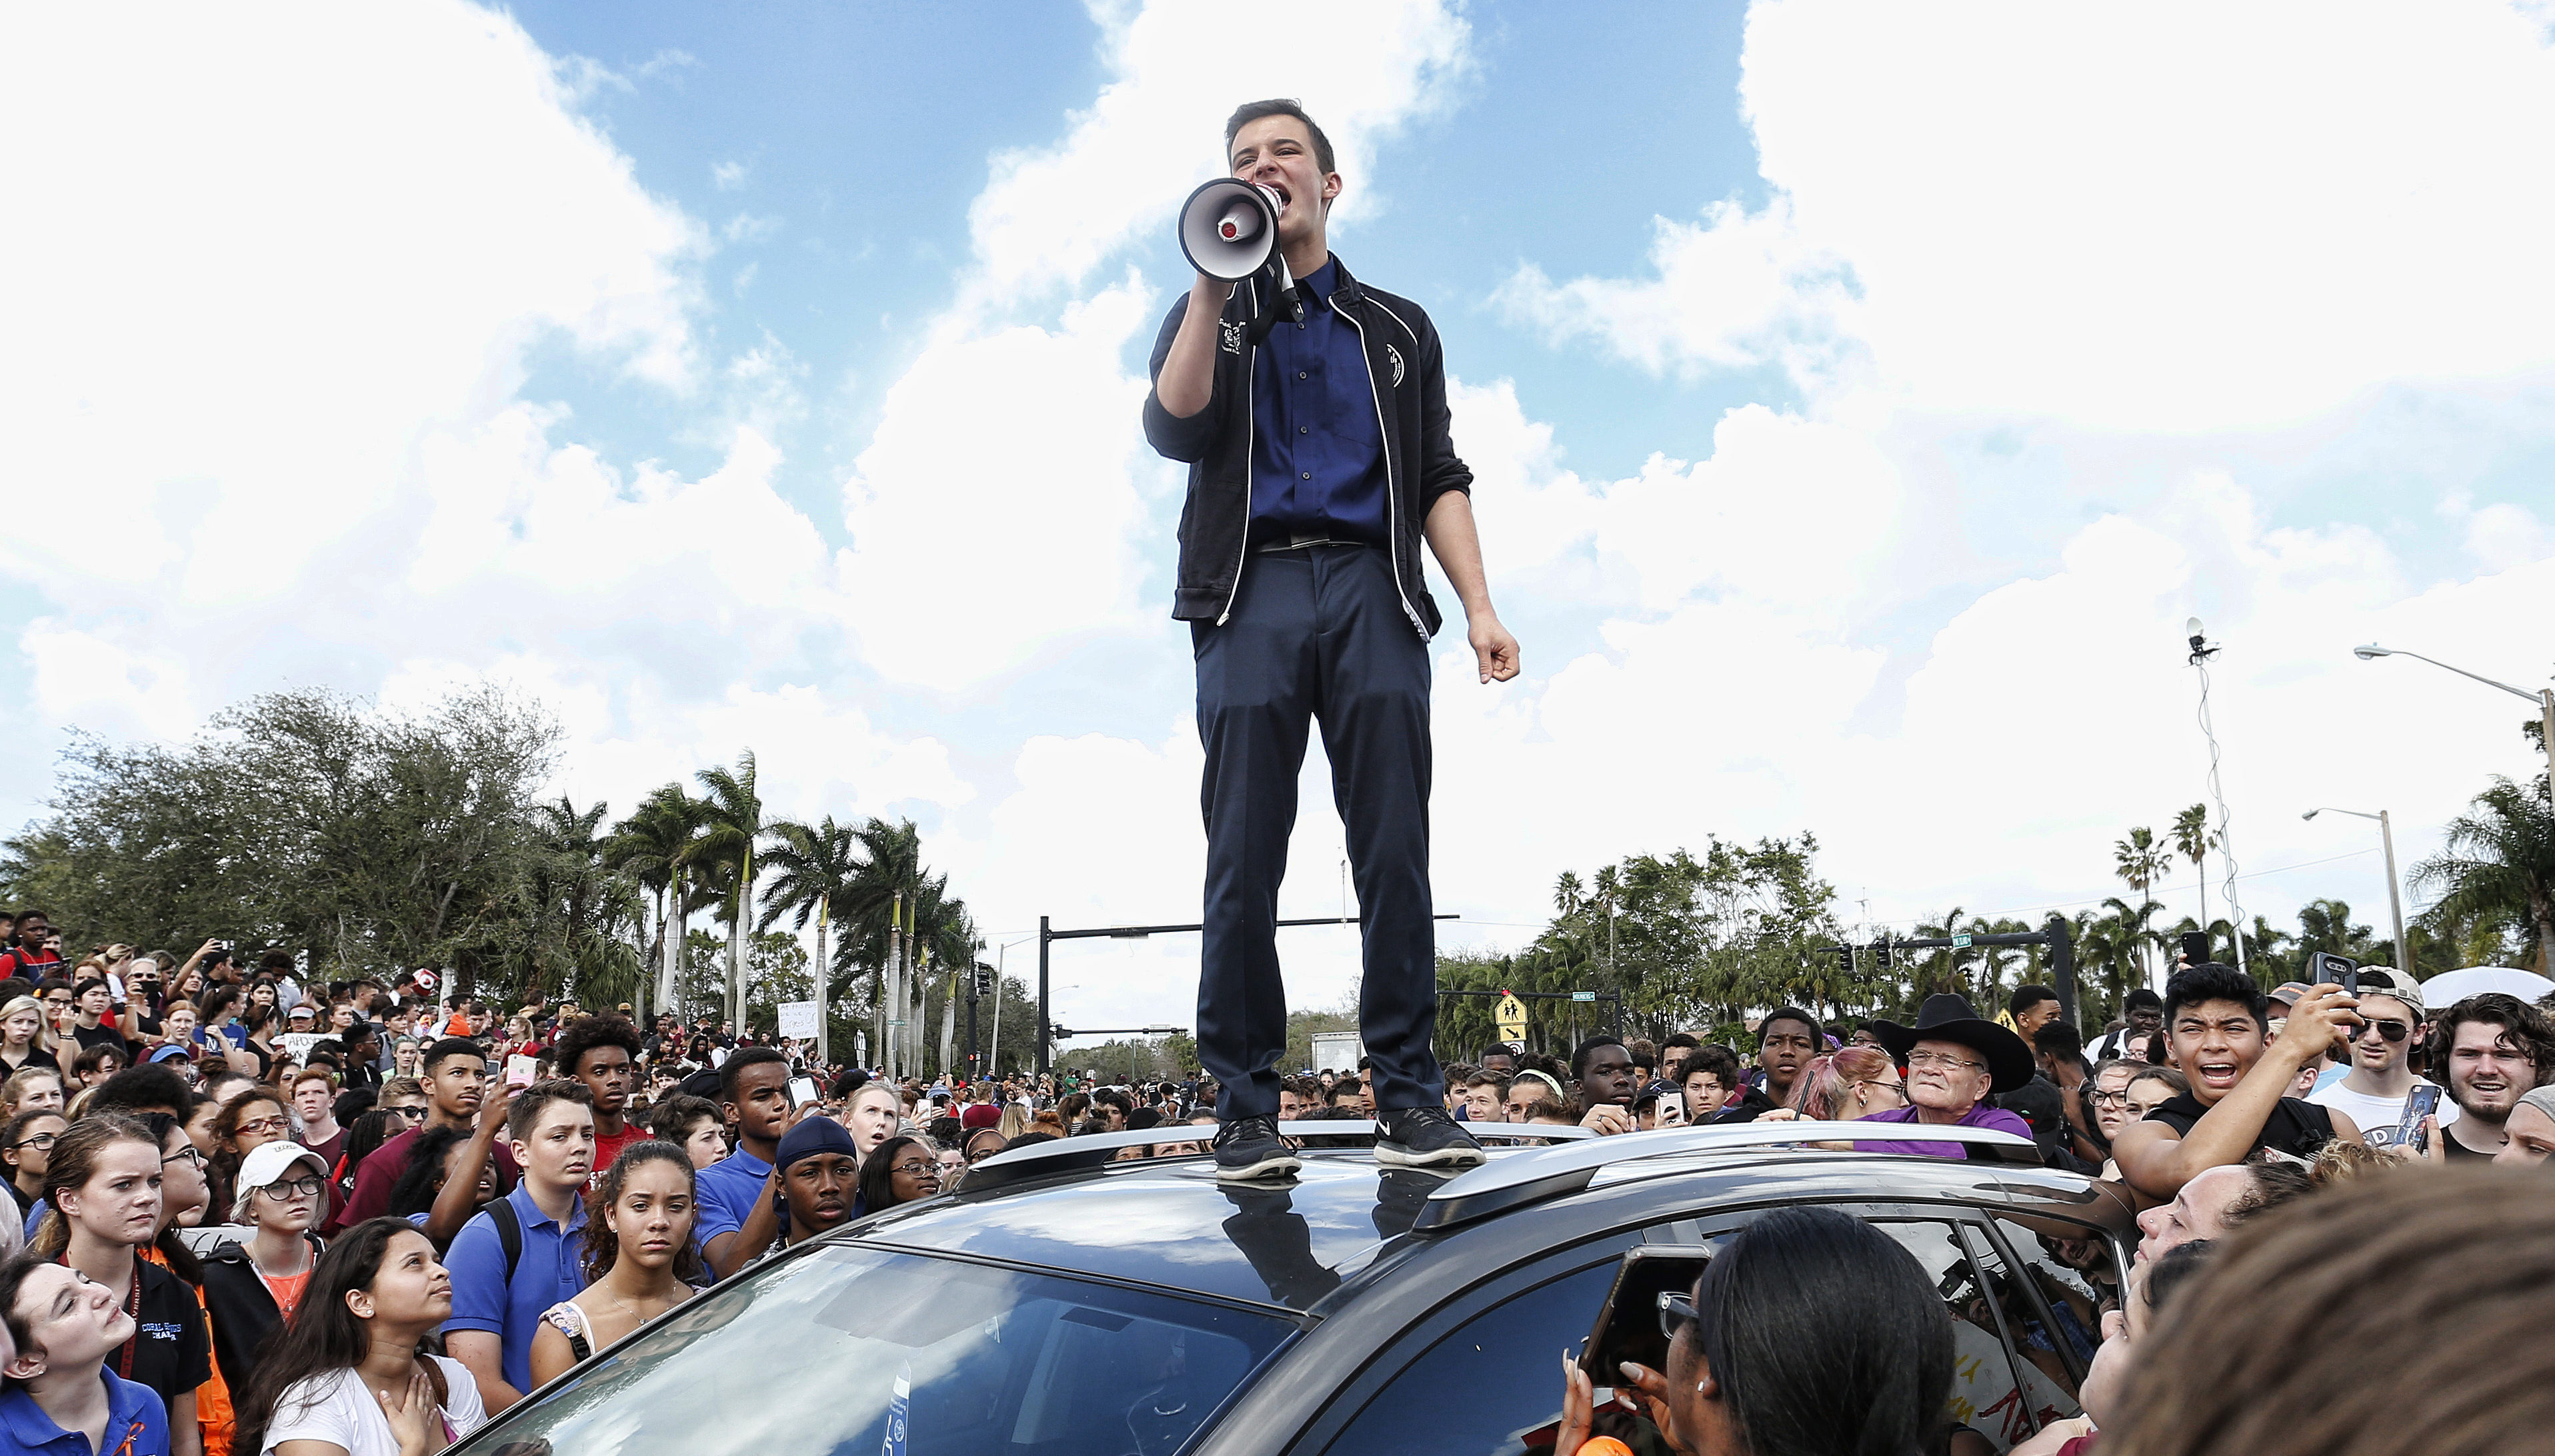 Marjory Stoneman High School student Cameron Kasky addressing area students as they rally at his school after participating in a countywide school walkout in Parkland, Fla., Feb. 21, 2018. (Photo/JTA-Rhona Wise-AFP-Getty Images)